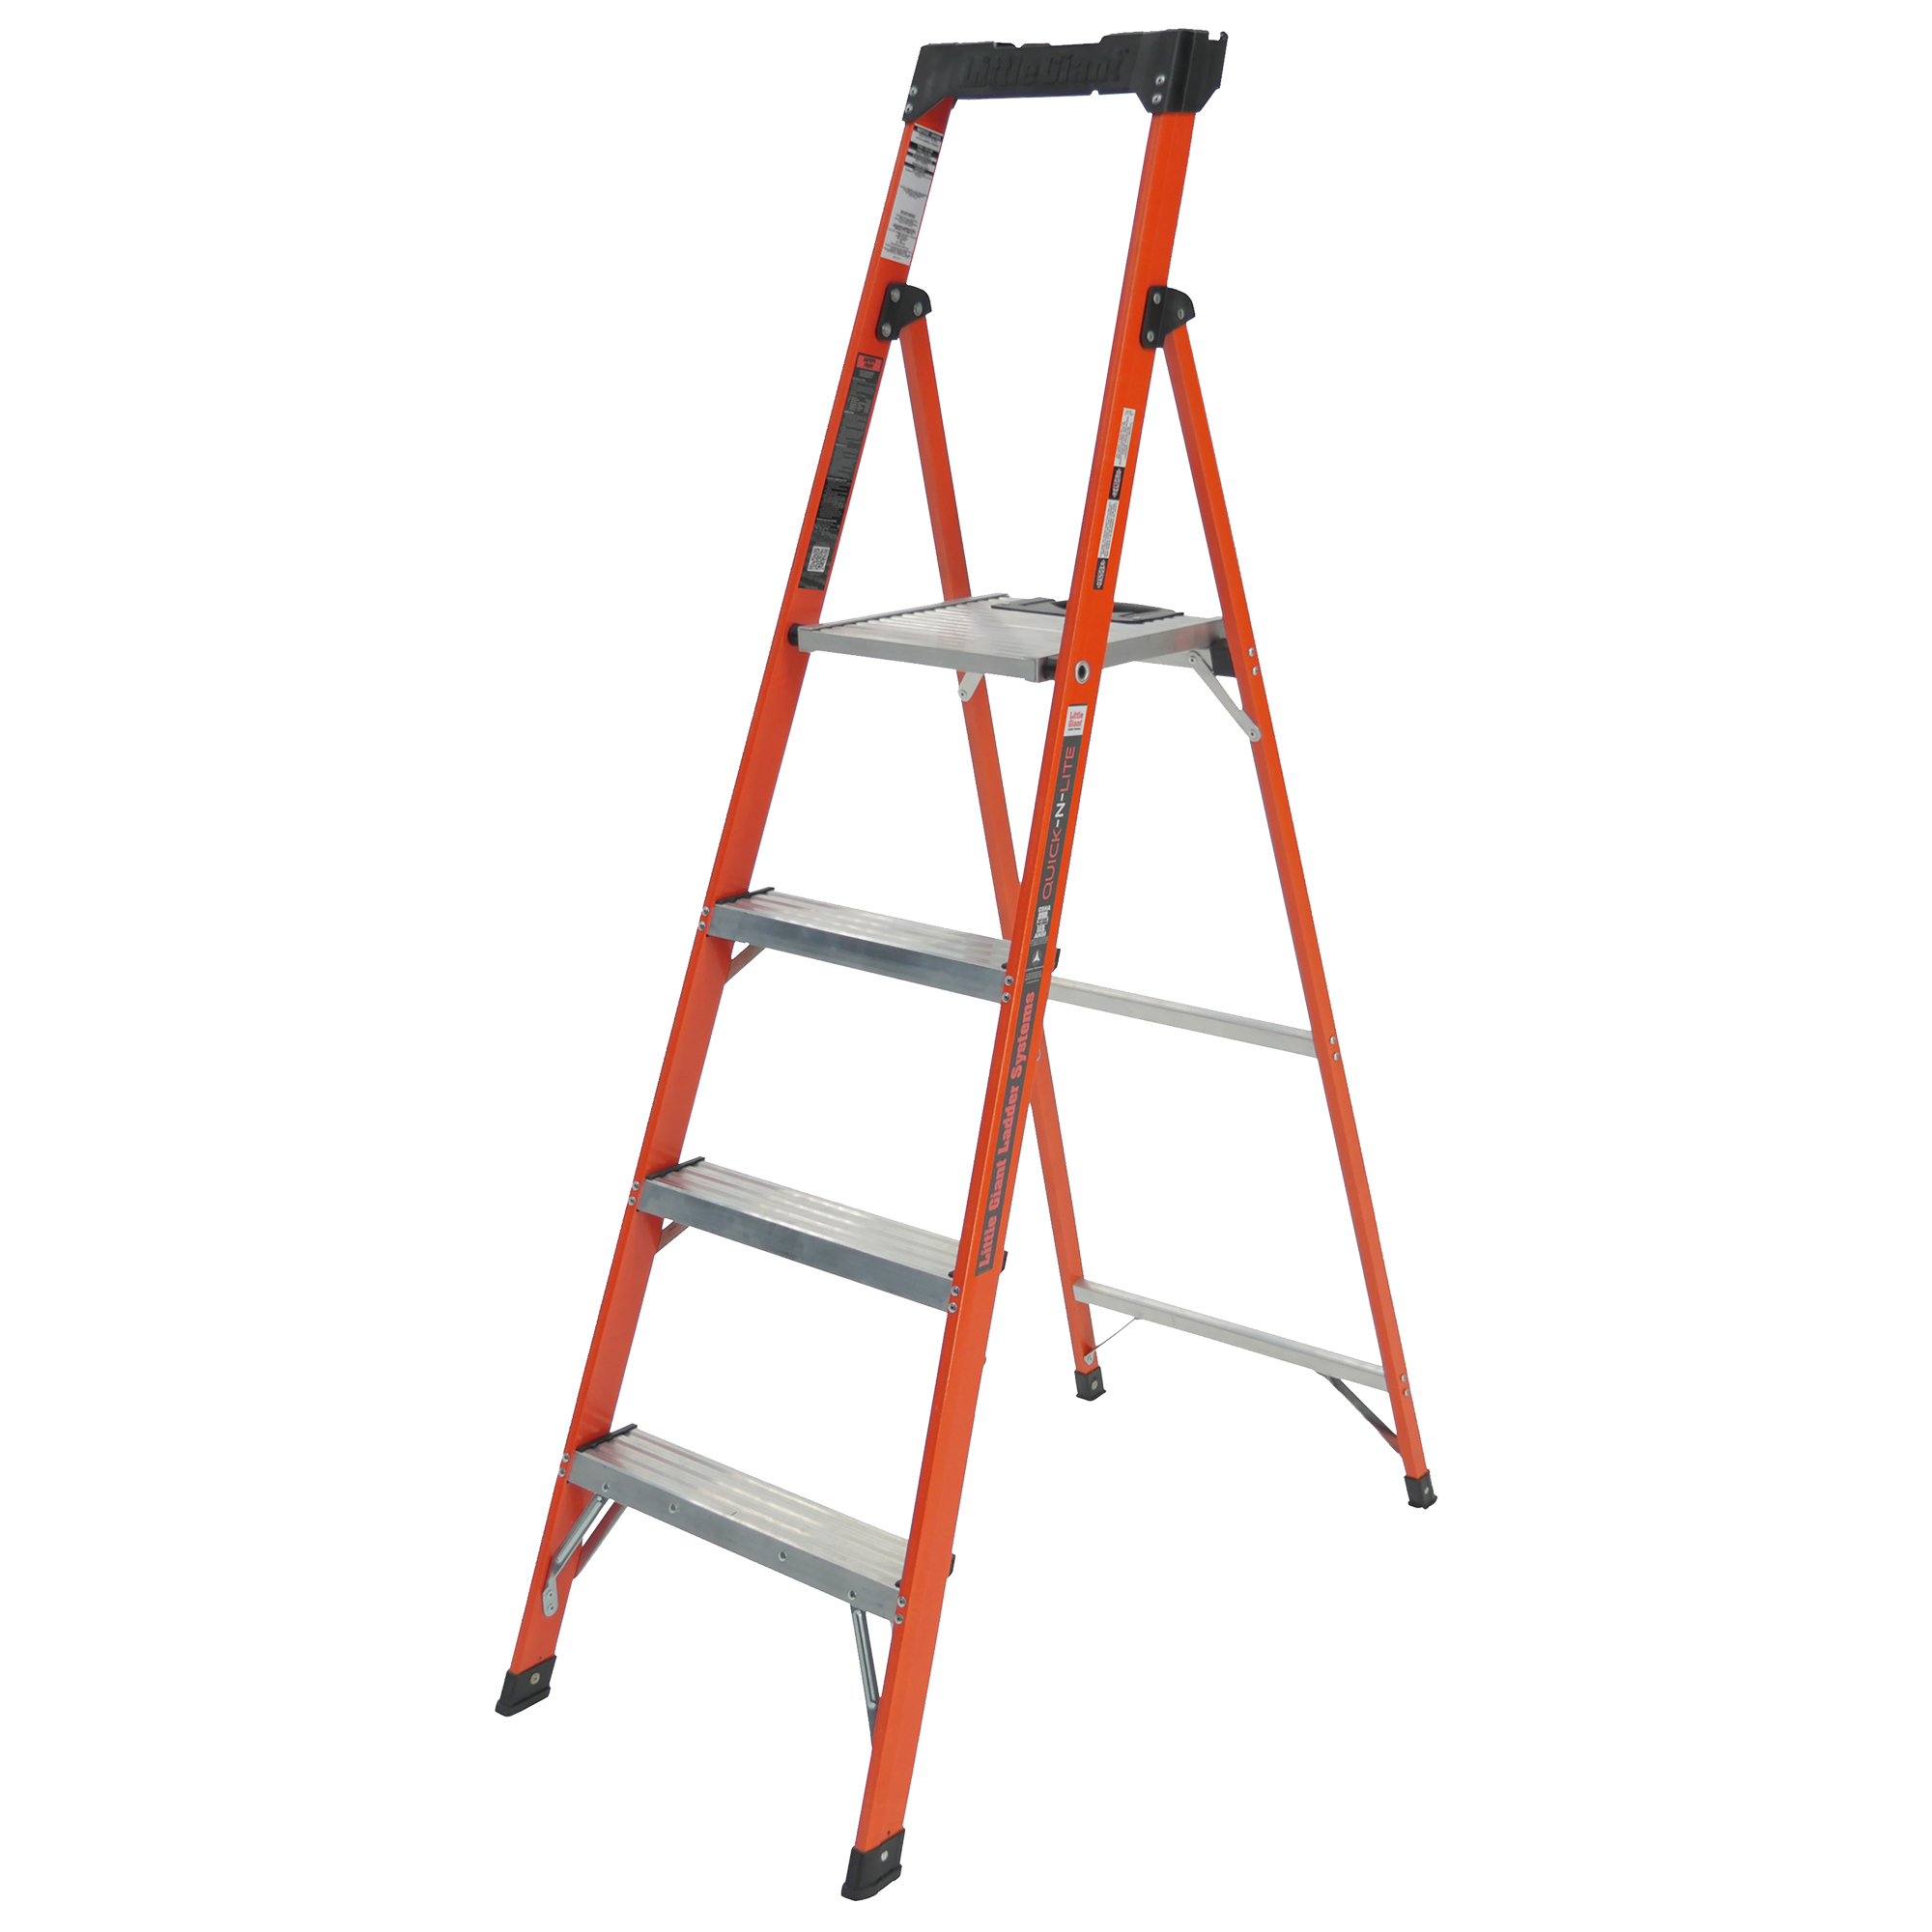 Quick N Lite M6 Type 1 Fiberglass Step Ladder